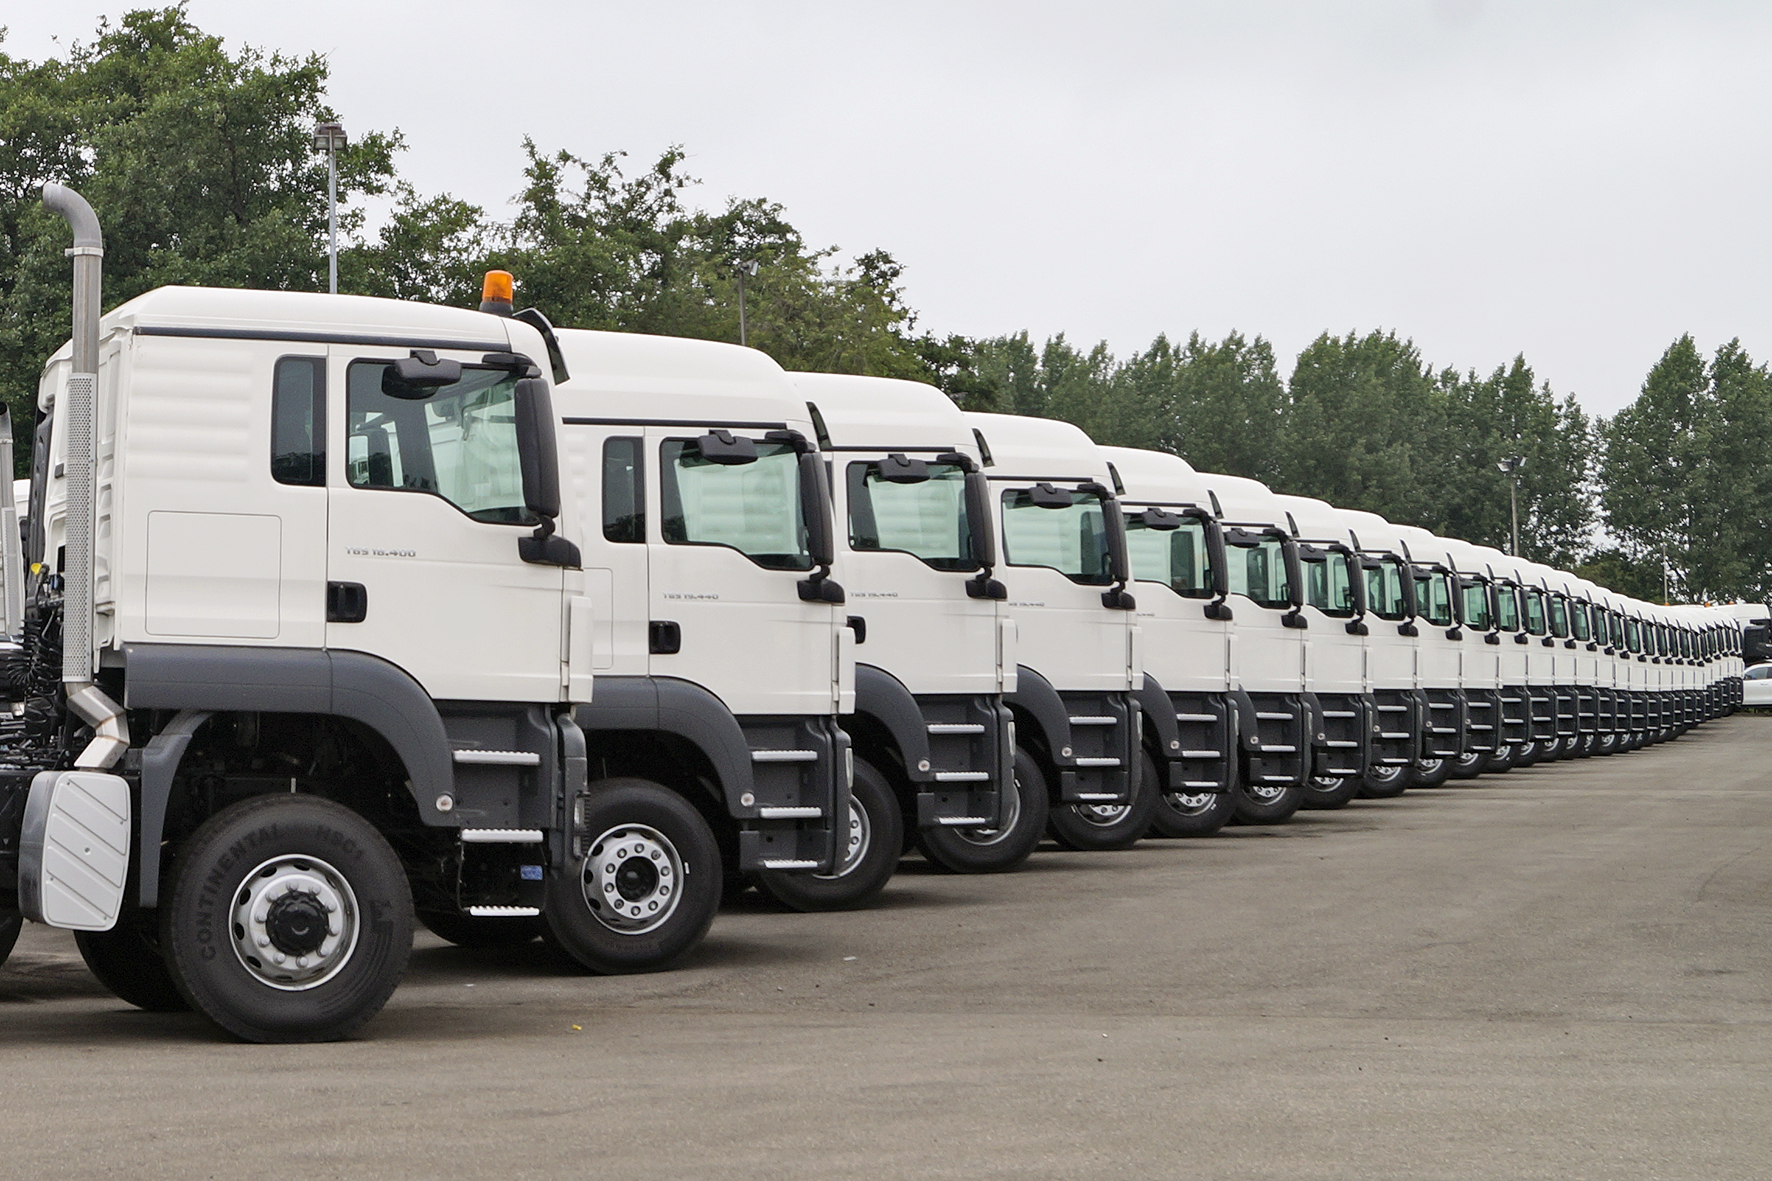 Large stock new Trucks for direct delivery